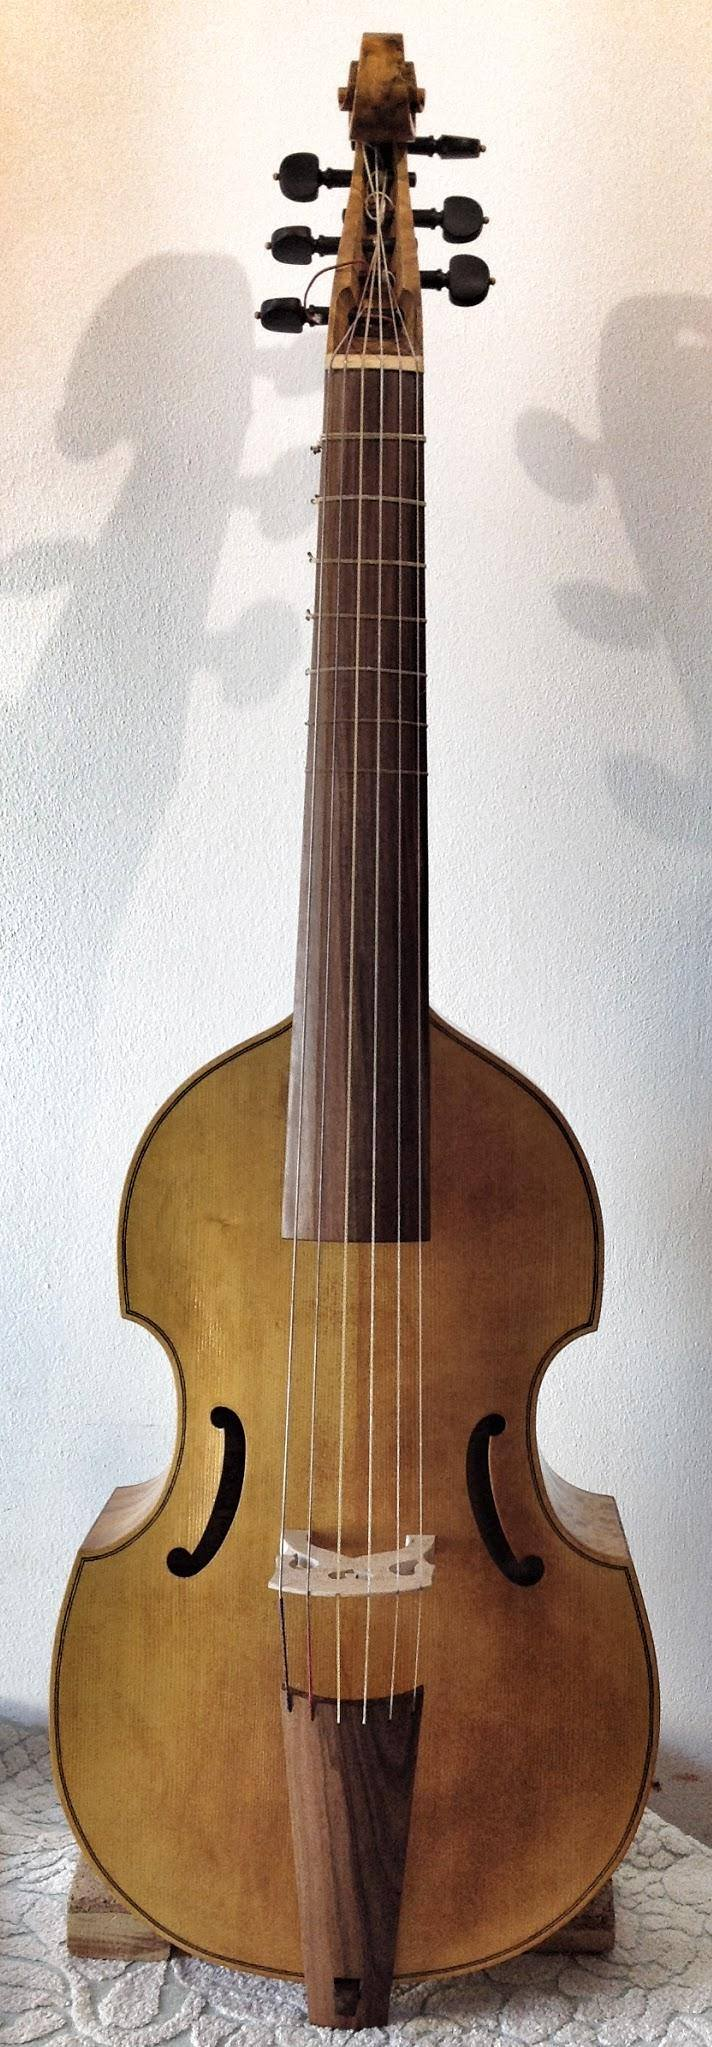 Henry Jaye Bass Viol  69 cm string length  €1900 plus strings - STUDENT MODEL